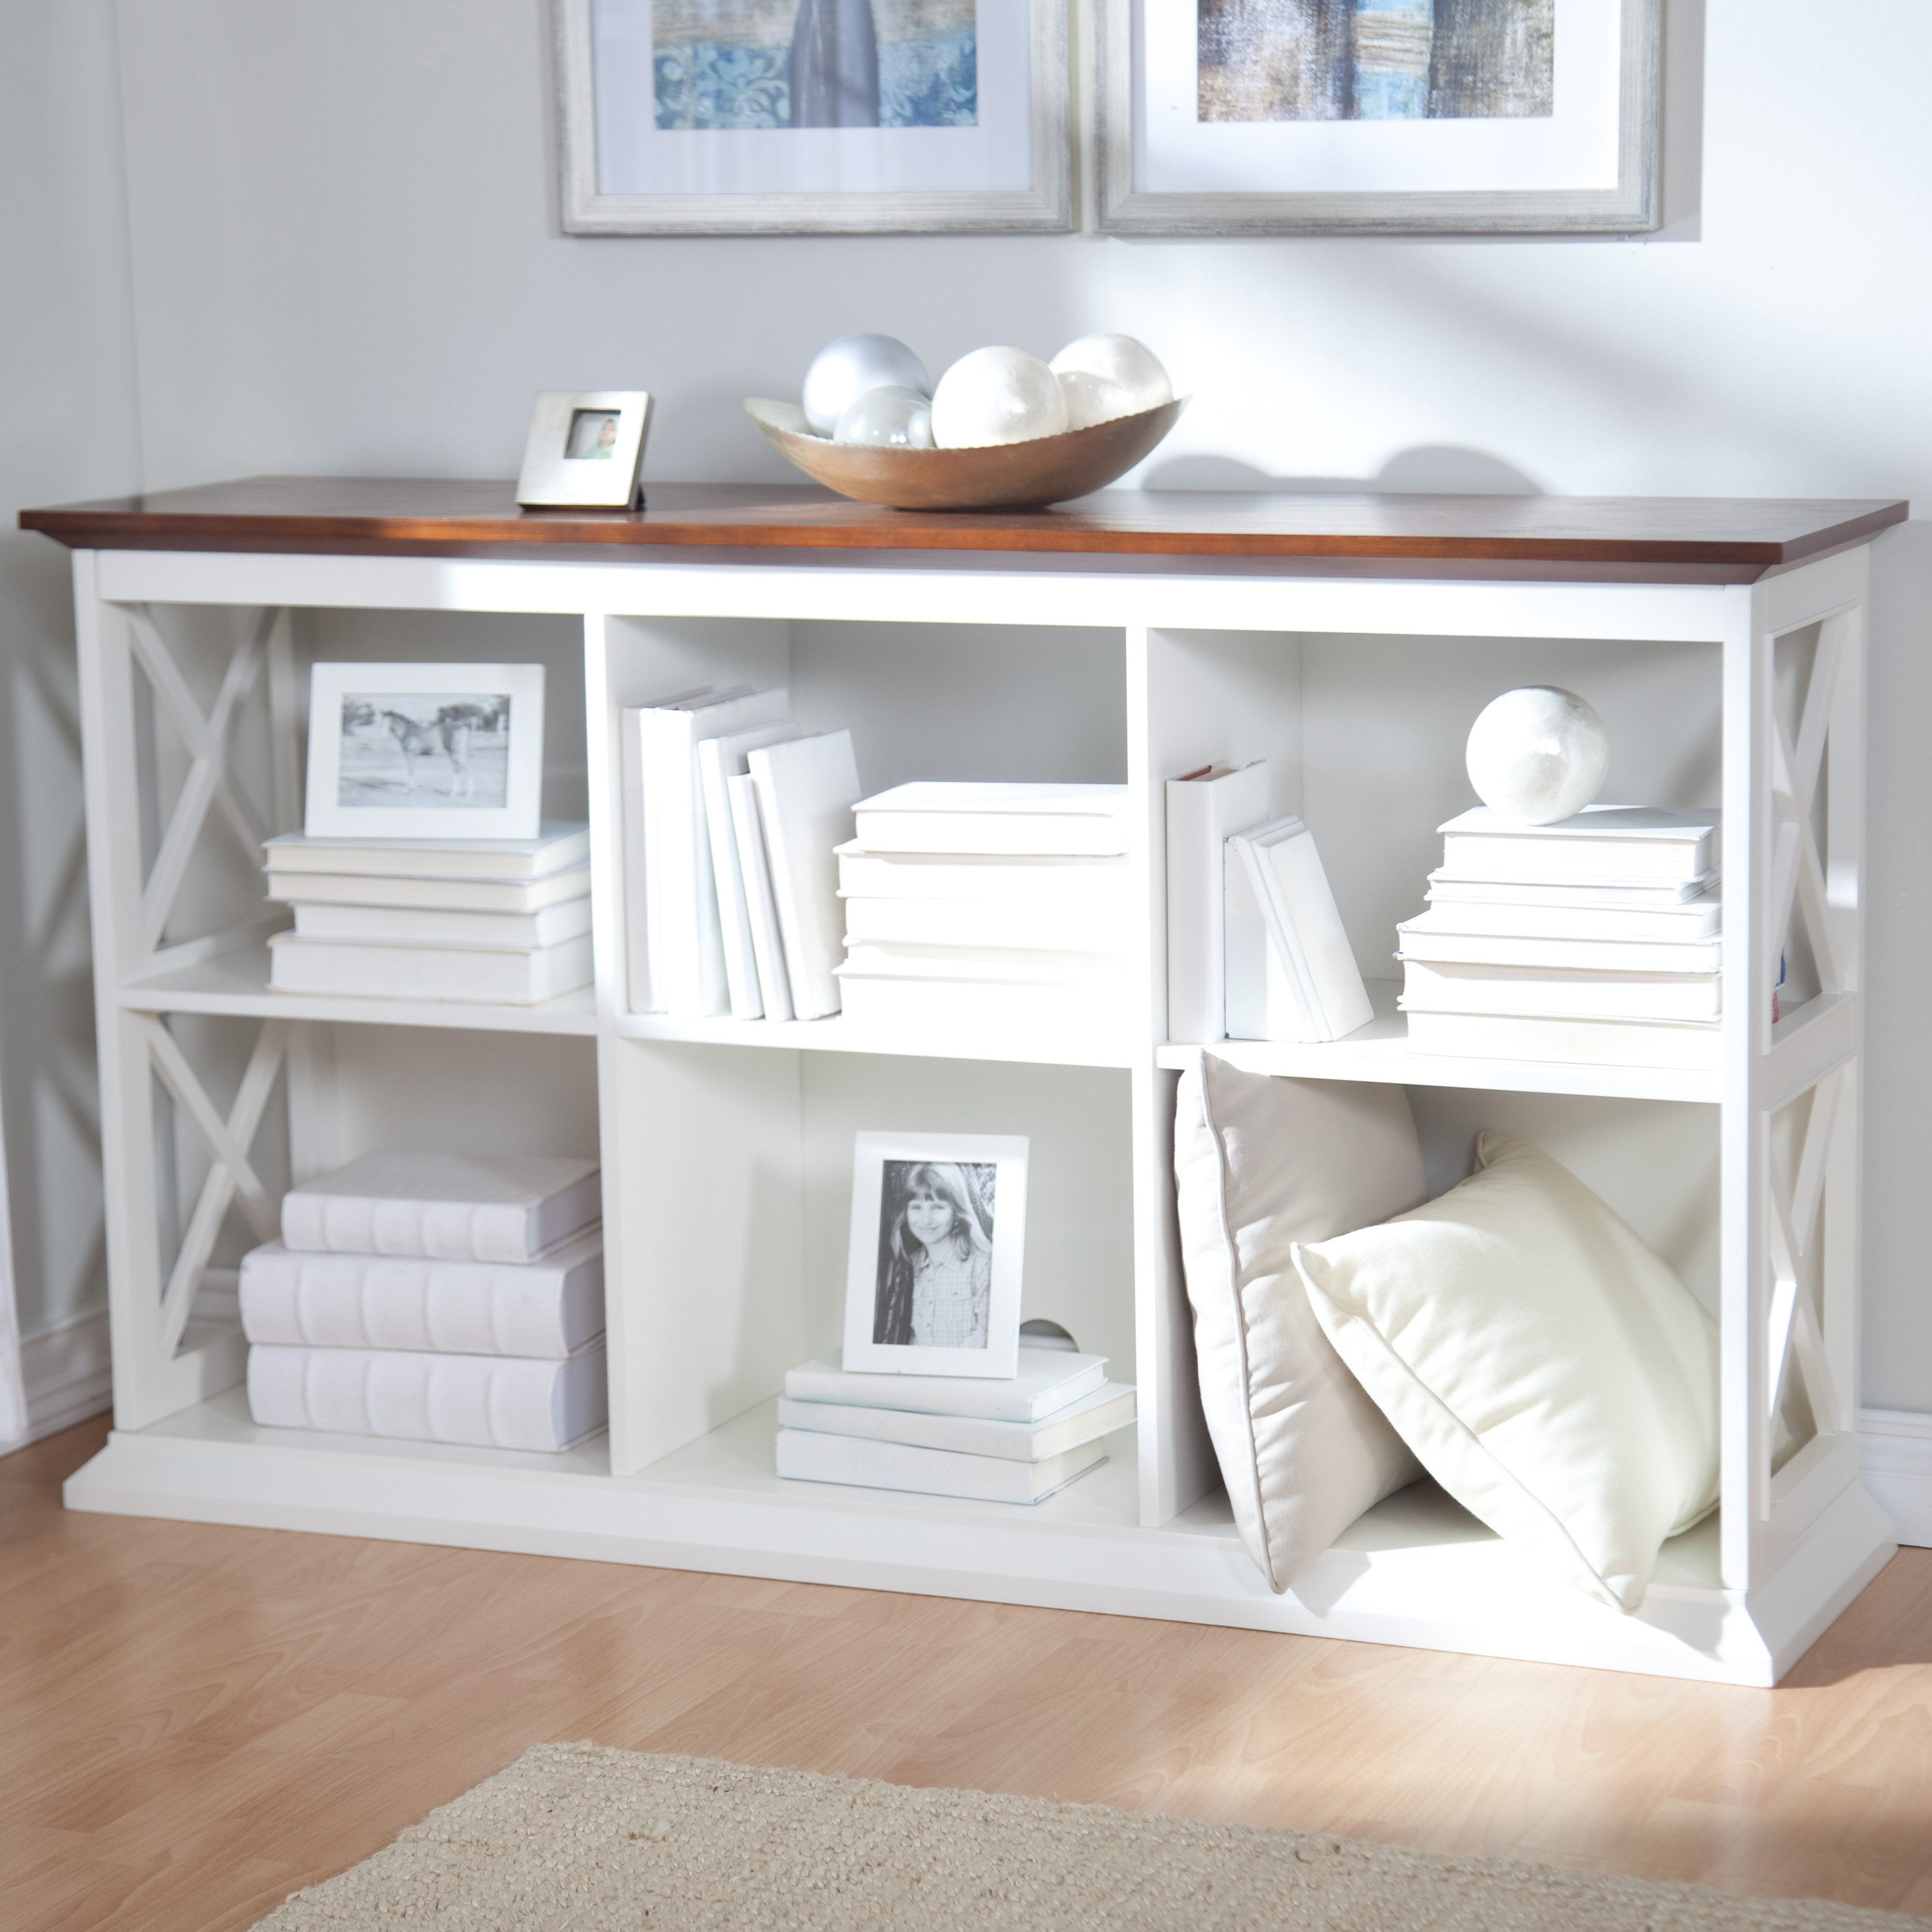 Perfect for wine storage in the dining room or book storage in an office. - The H&ton Console Table Stackable Bookcase - White/Oak $279.98 & Perfect for wine storage in the dining room or book storage in an ...